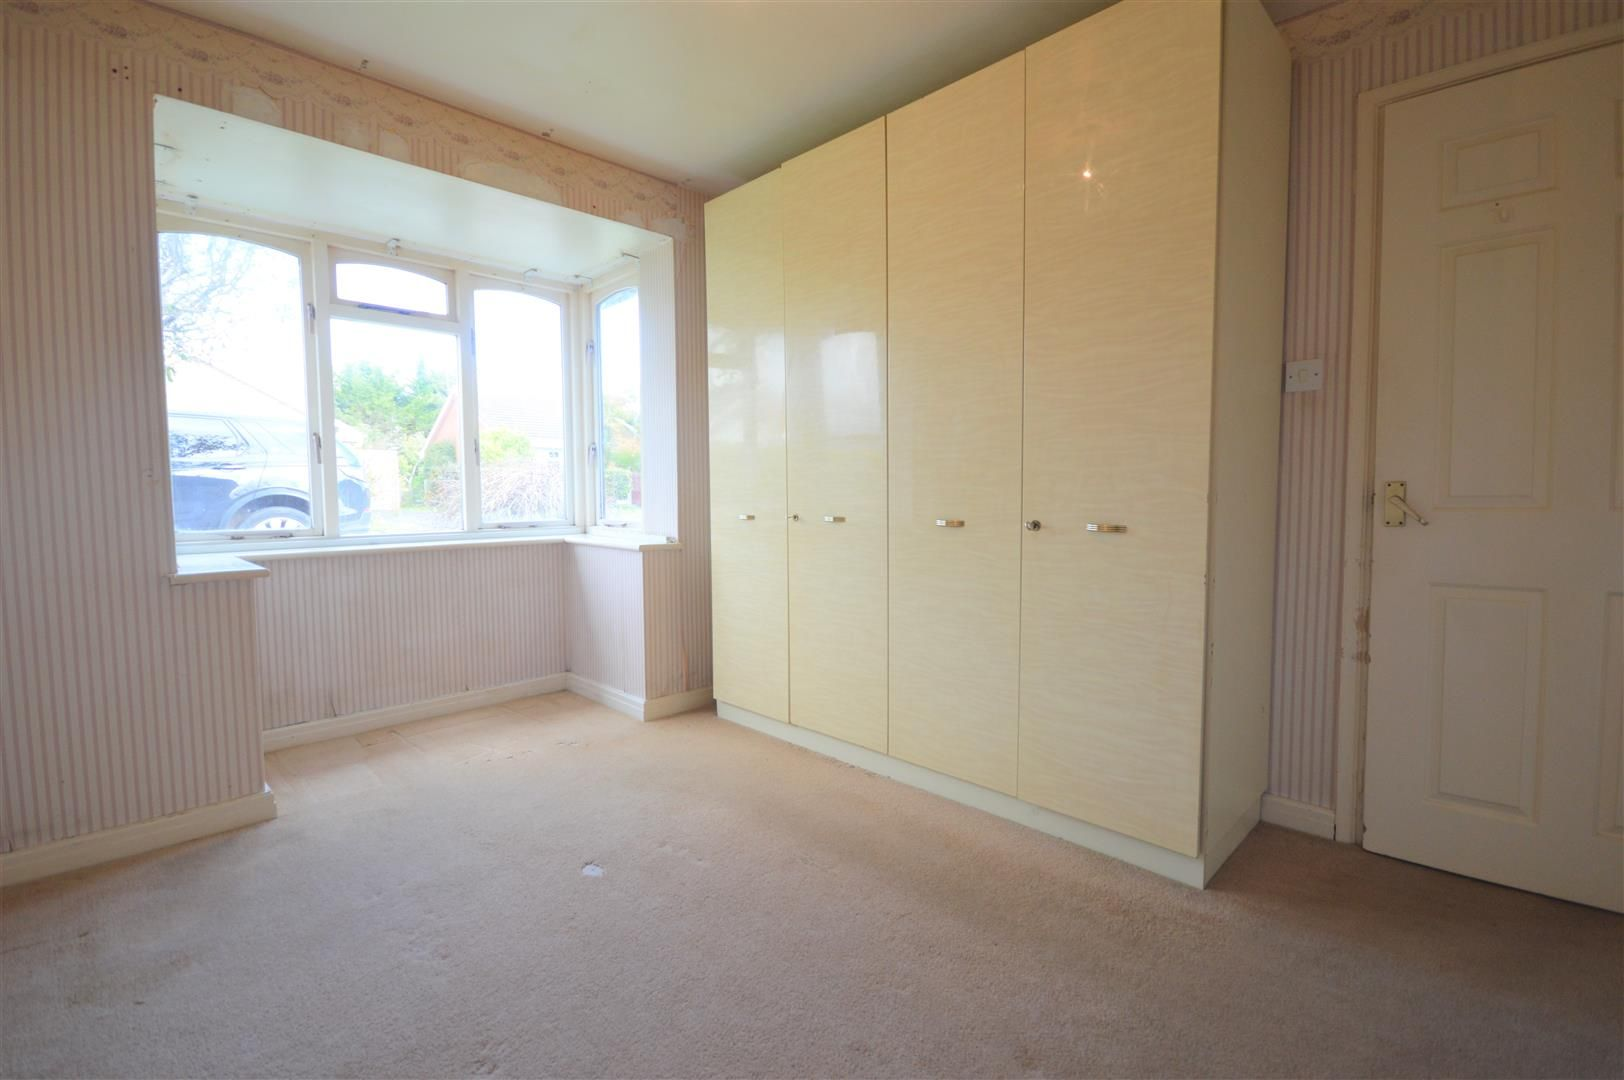 2 bed semi-detached bungalow for sale in Leominster 5